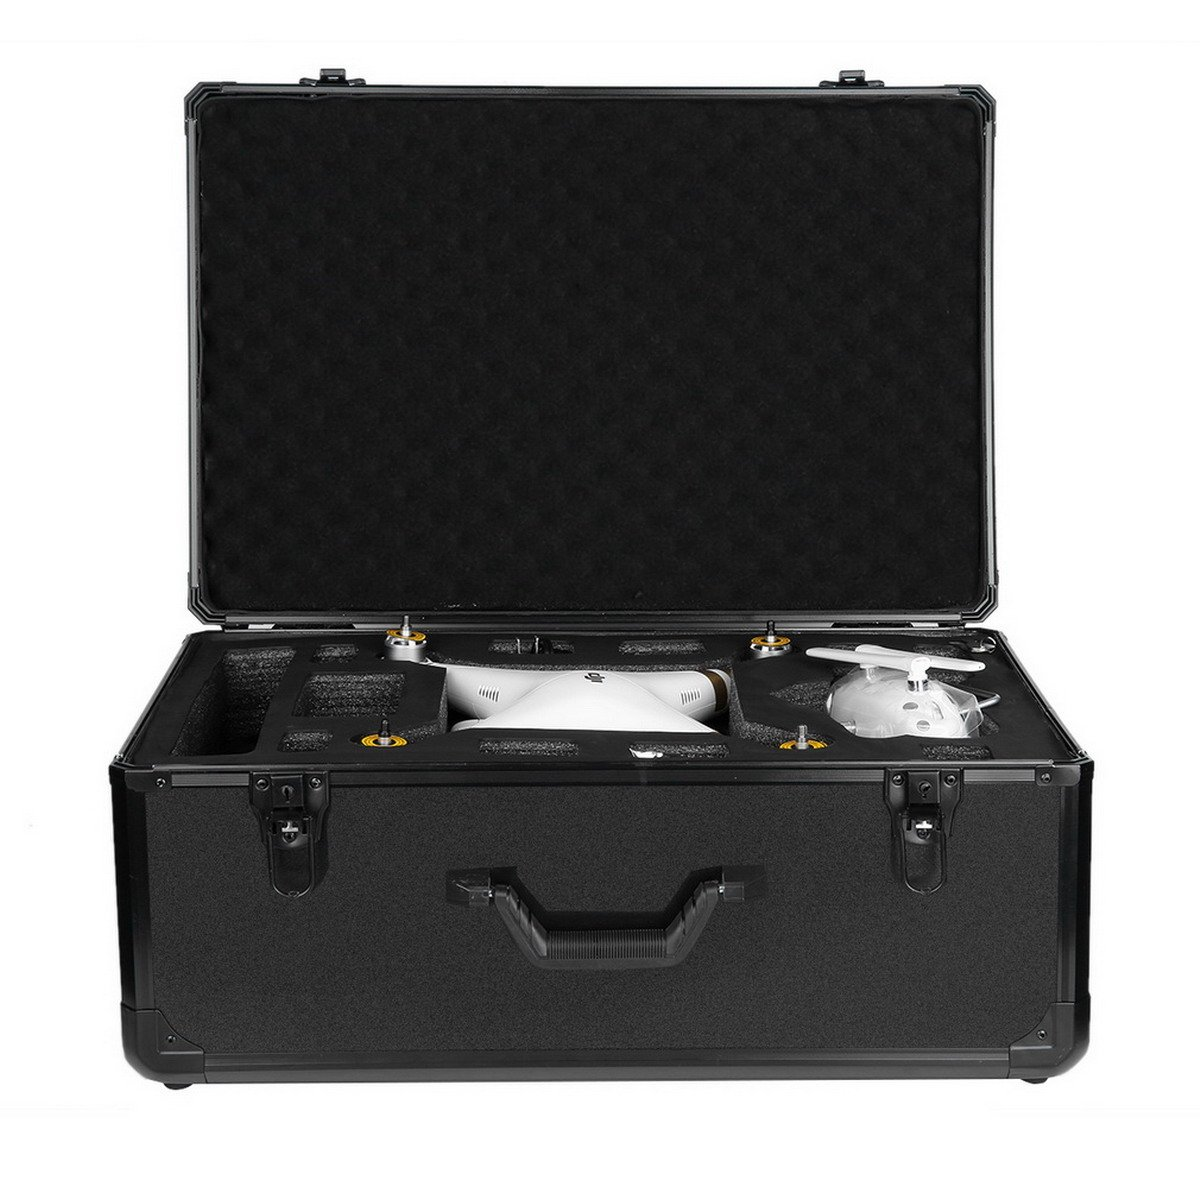 Special Aluminum Case Protective Protector Carry Out Box for Phantom 2-3 aluminum black, by LC Prime